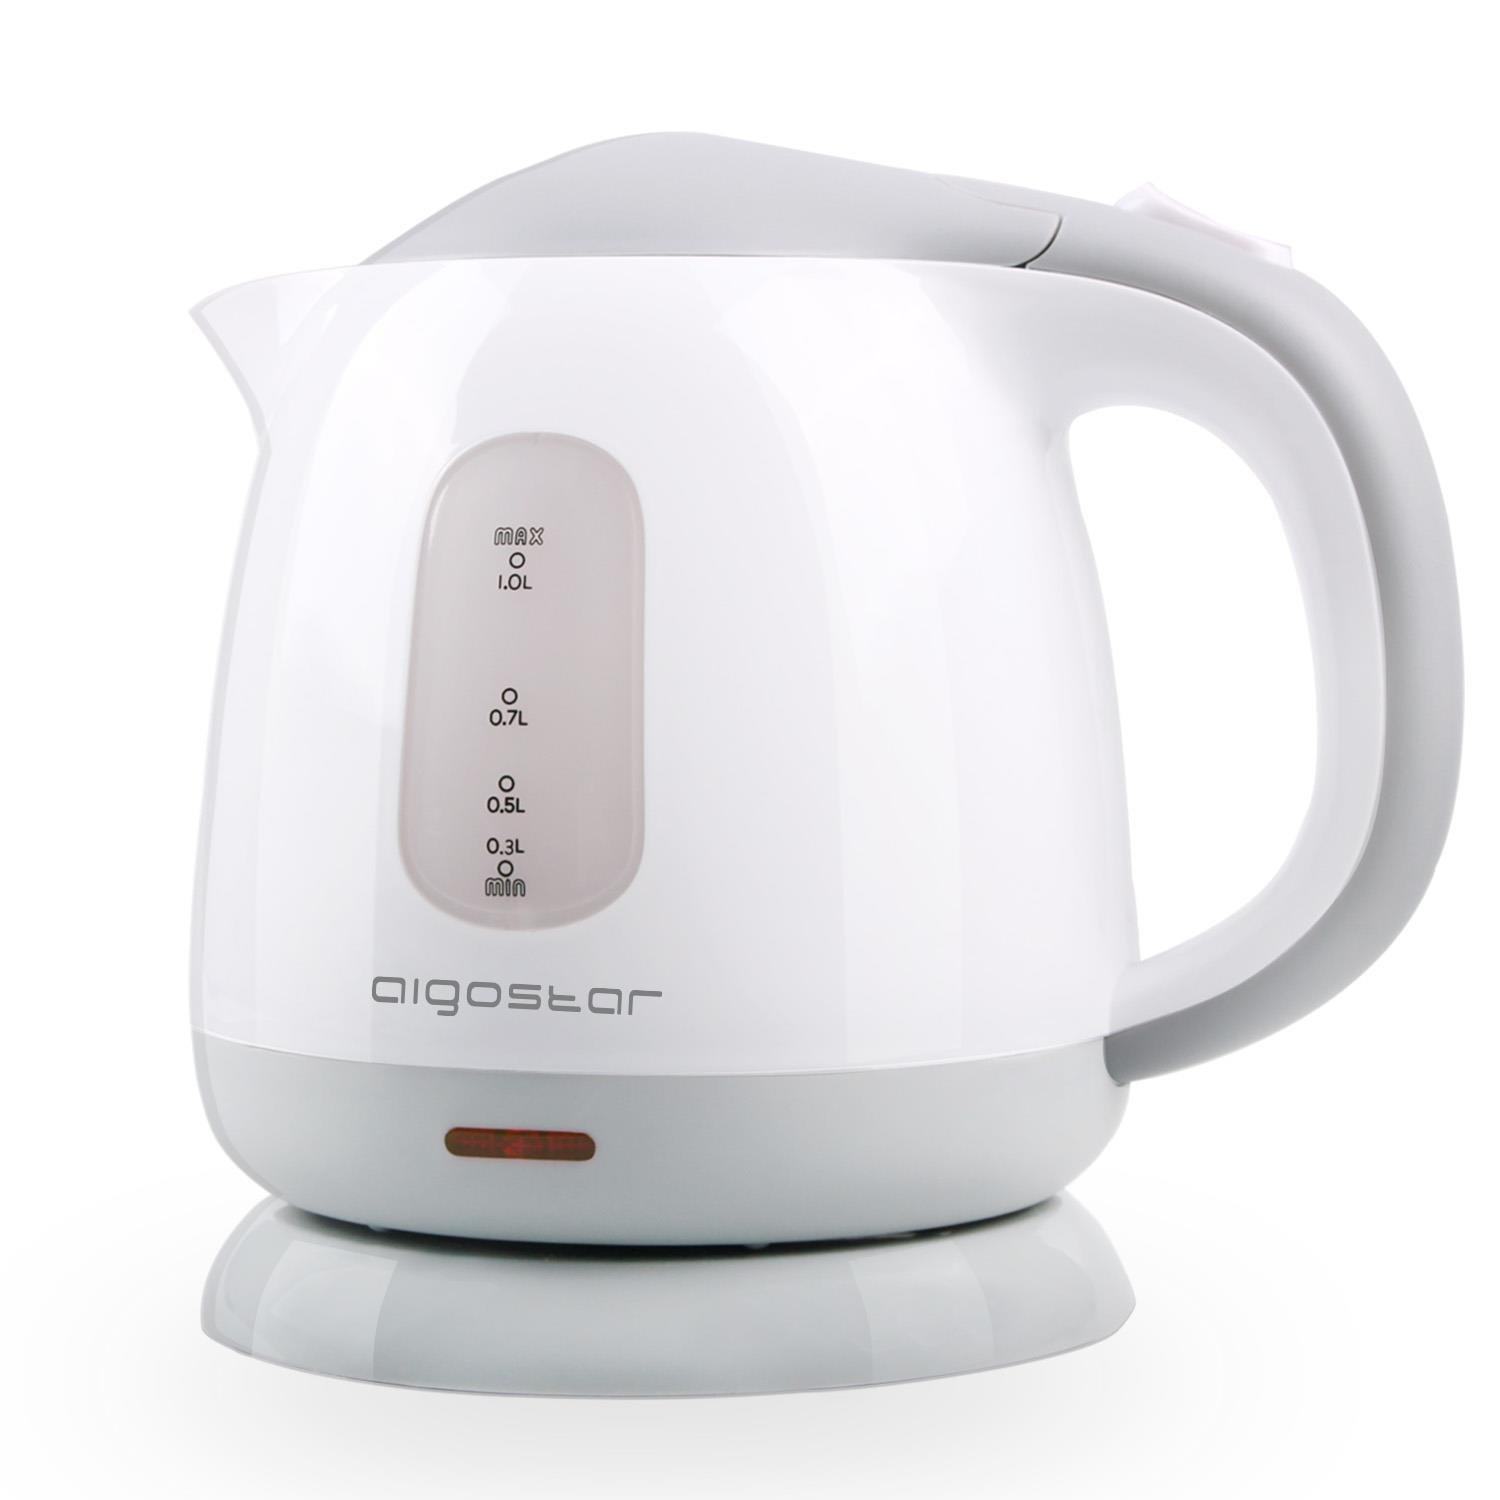 Aigostar Juliet - Mini Electric Tea Kettle, BPA Free, 1.0L, 1100W, Hot Water Heater, Grey and White